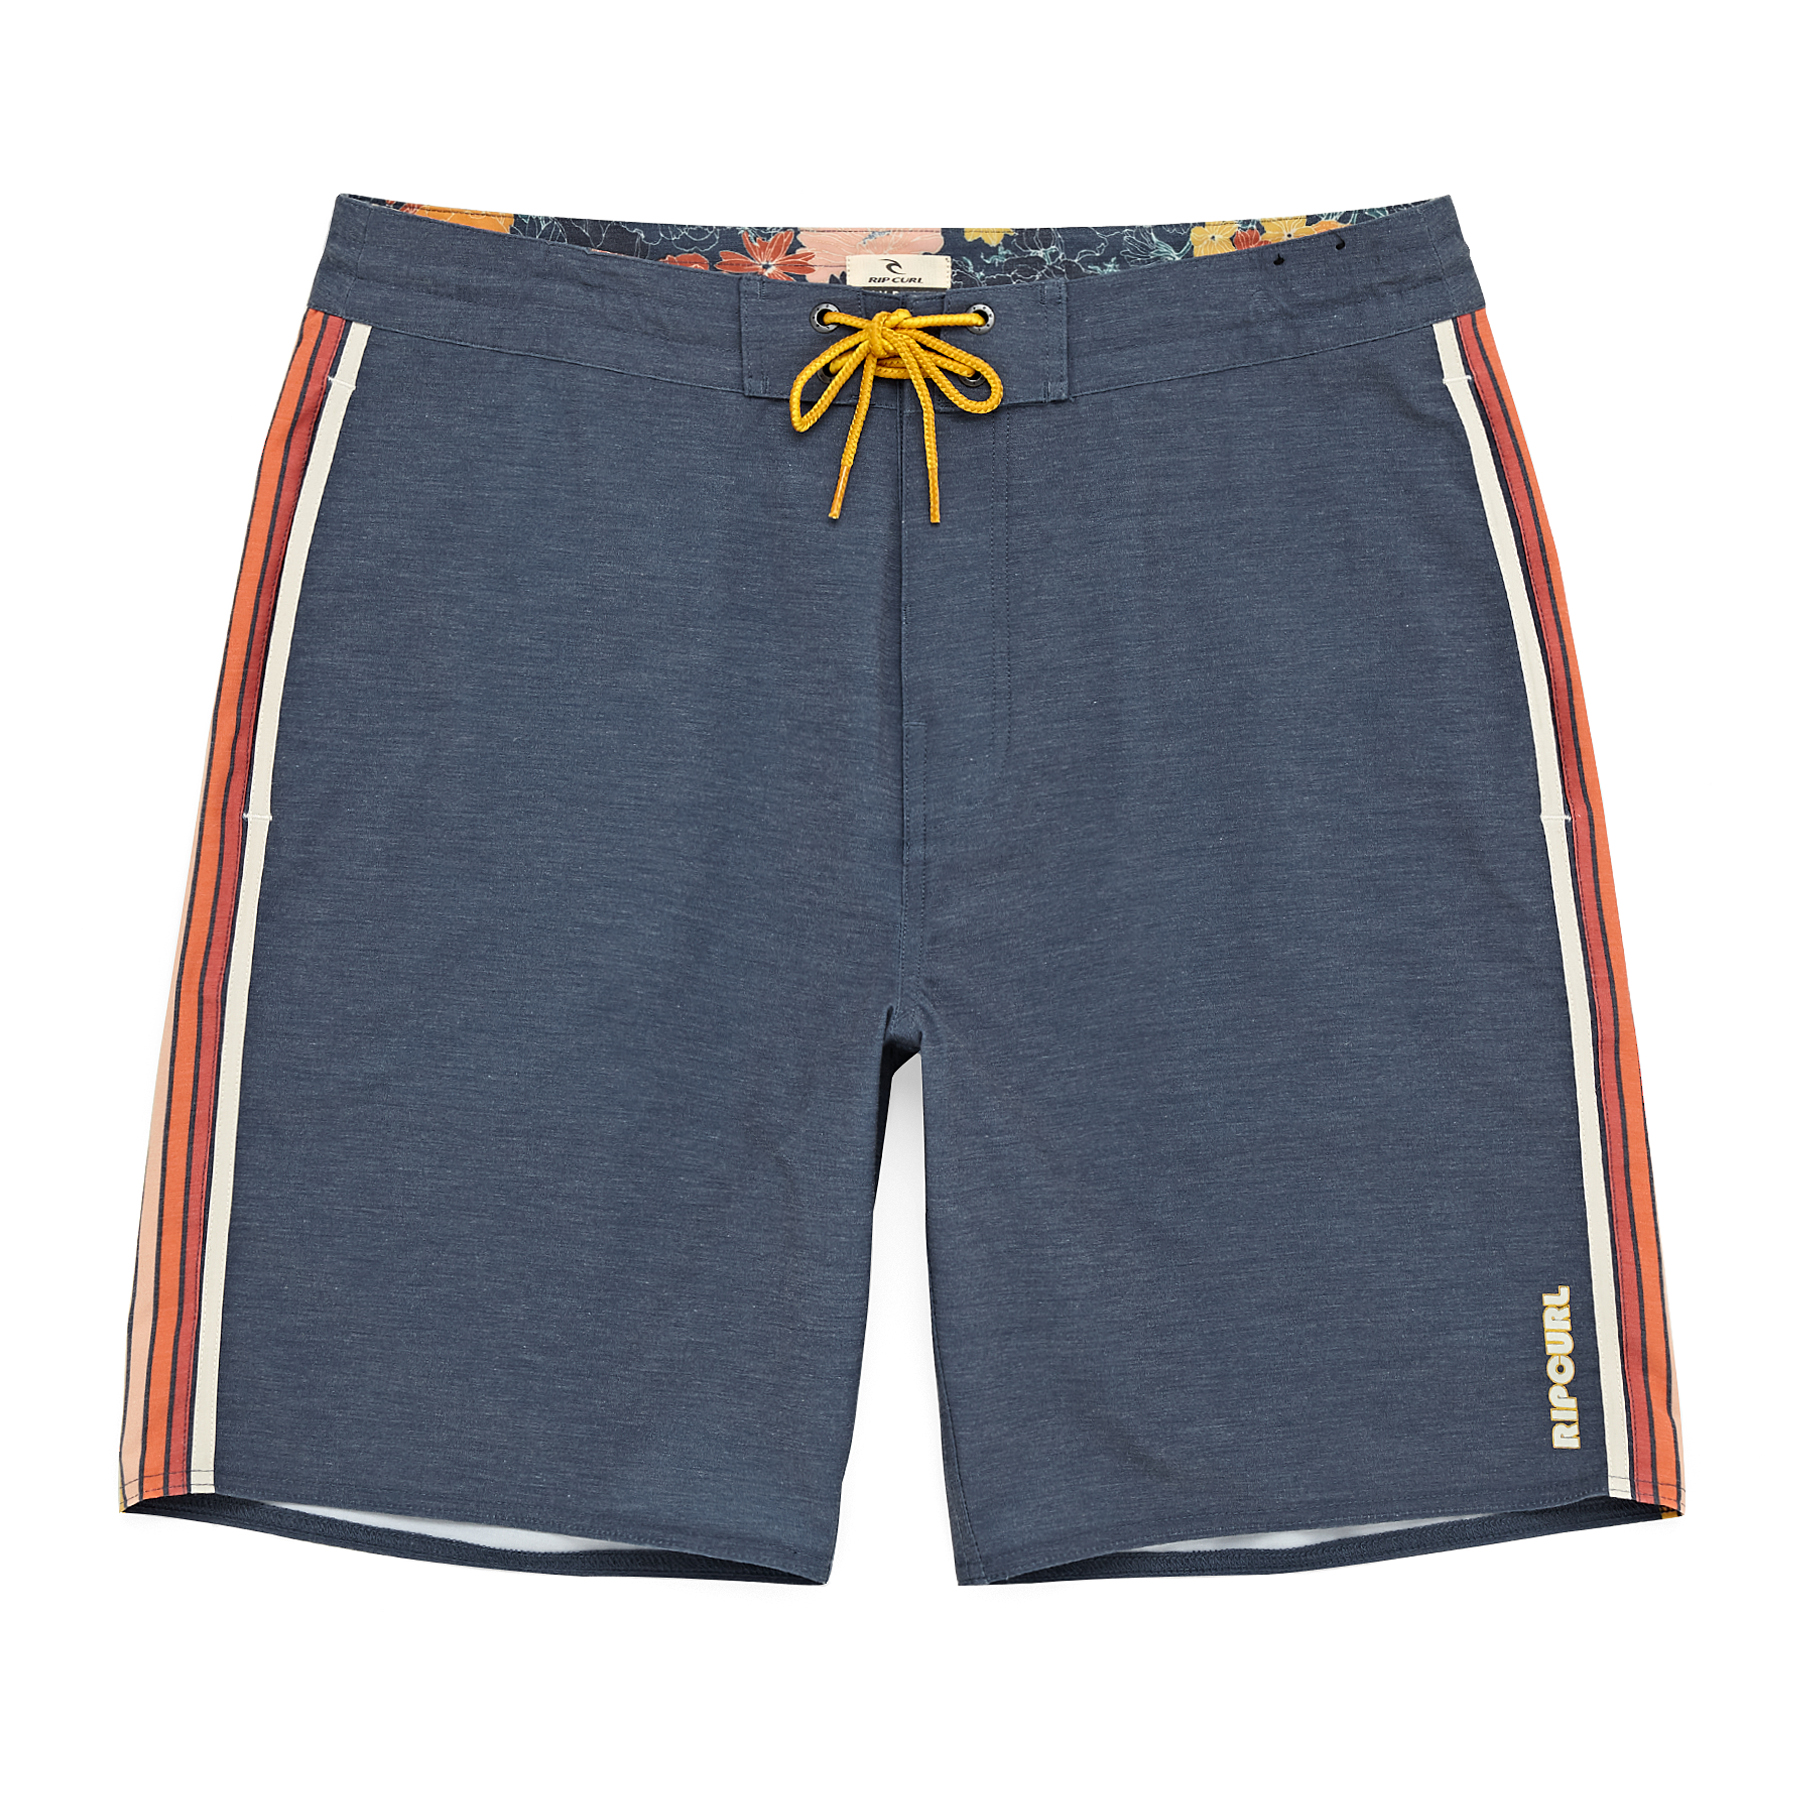 Rip Curl Surf Revival Layday 19inch Boardshorts